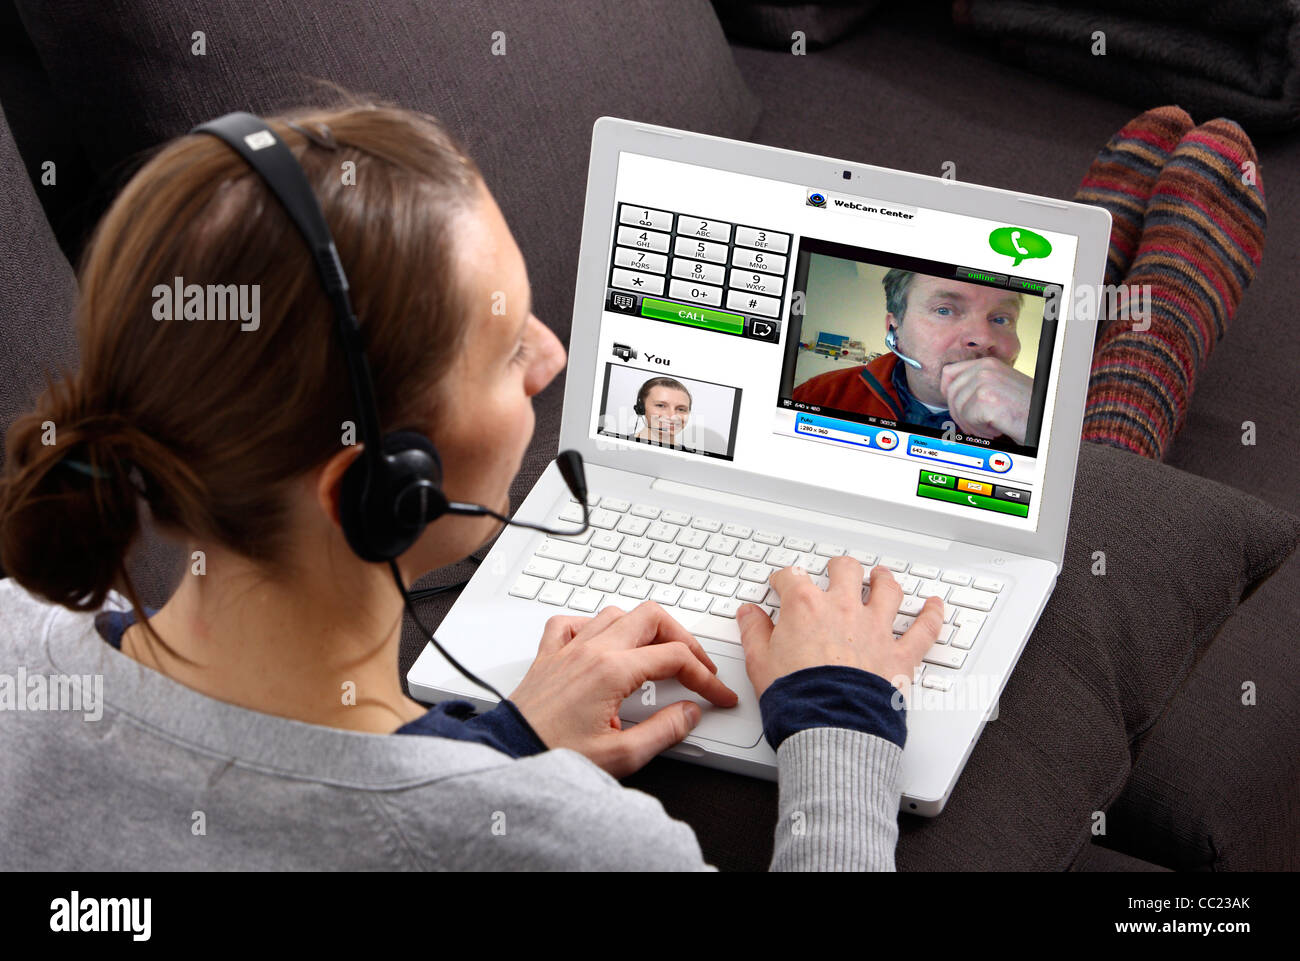 webcam chat with people